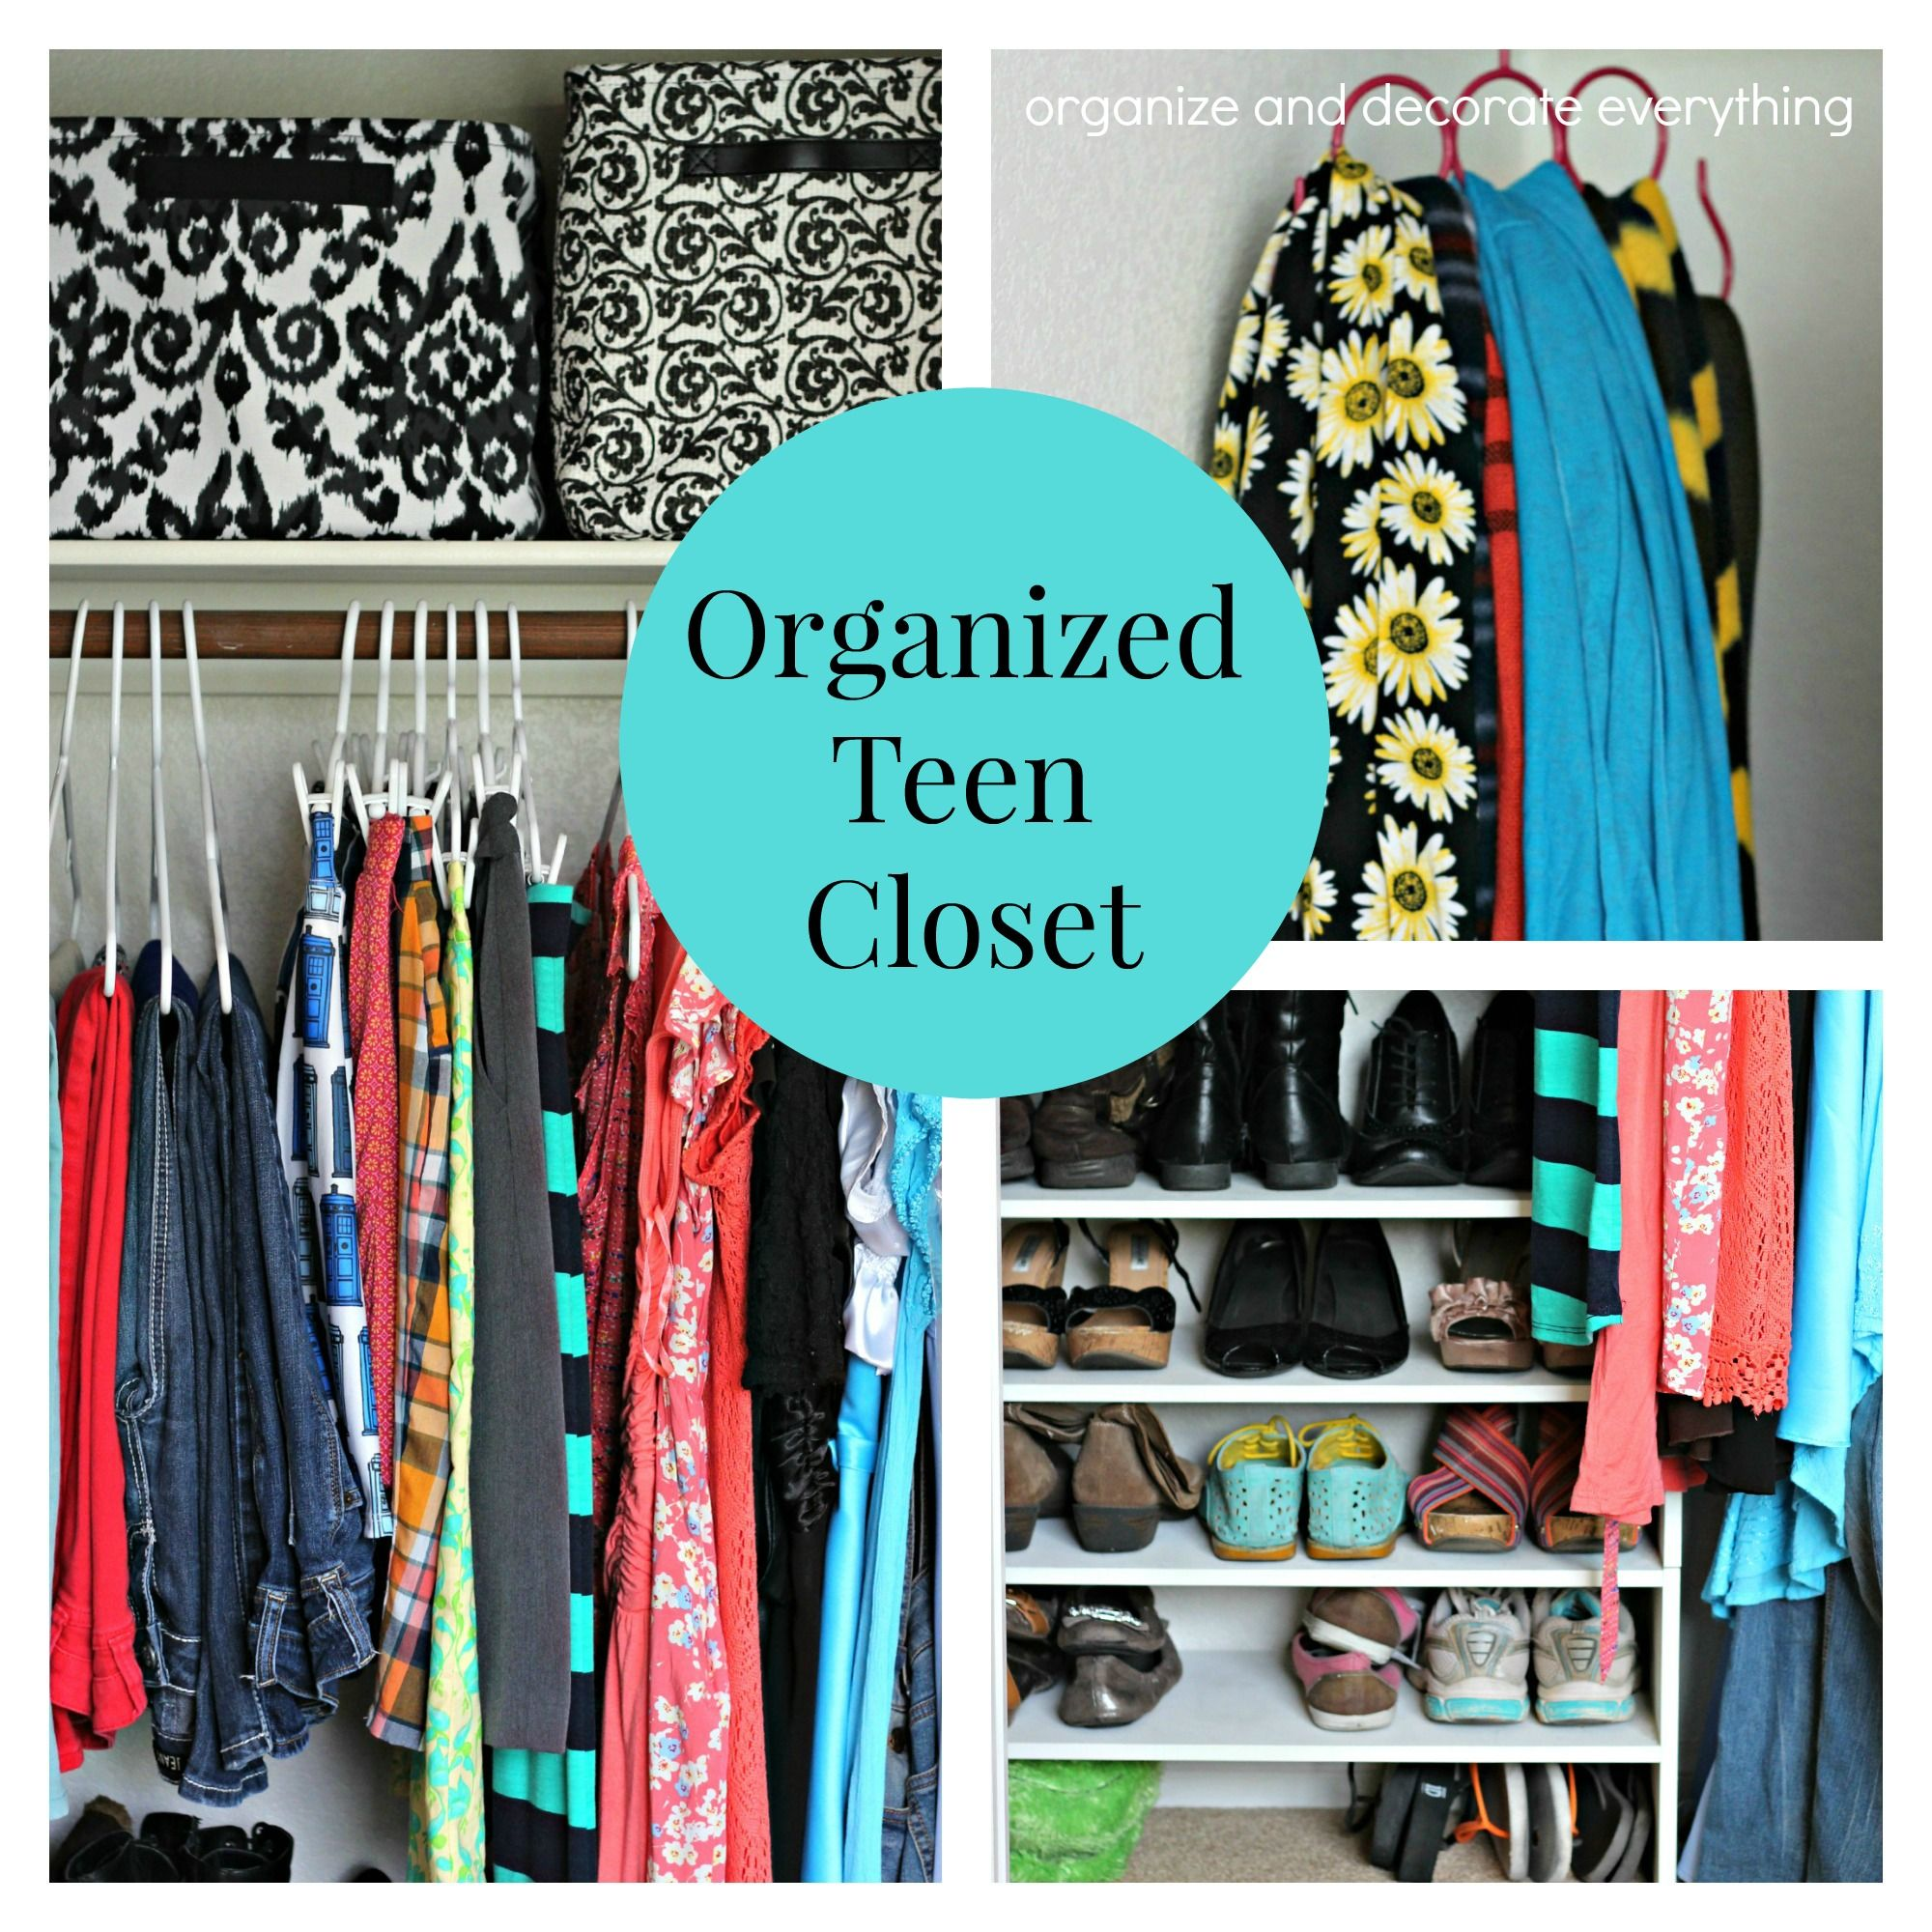 Organized Teen Closet   Organize And Decorate Everything